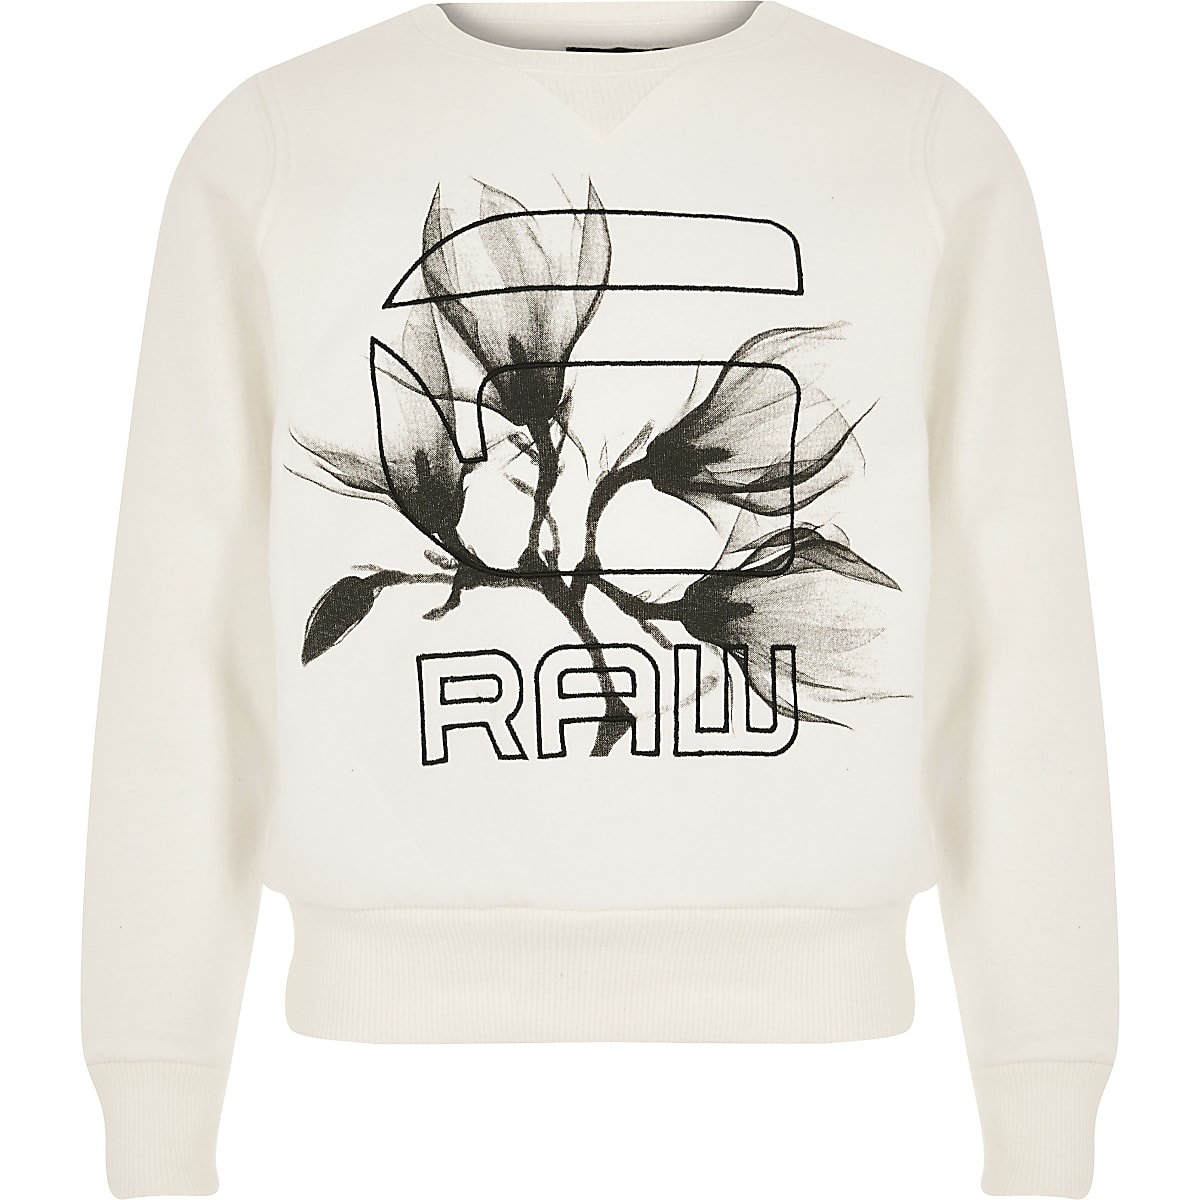 Girls G-Star Raw cream logo sweatshirt